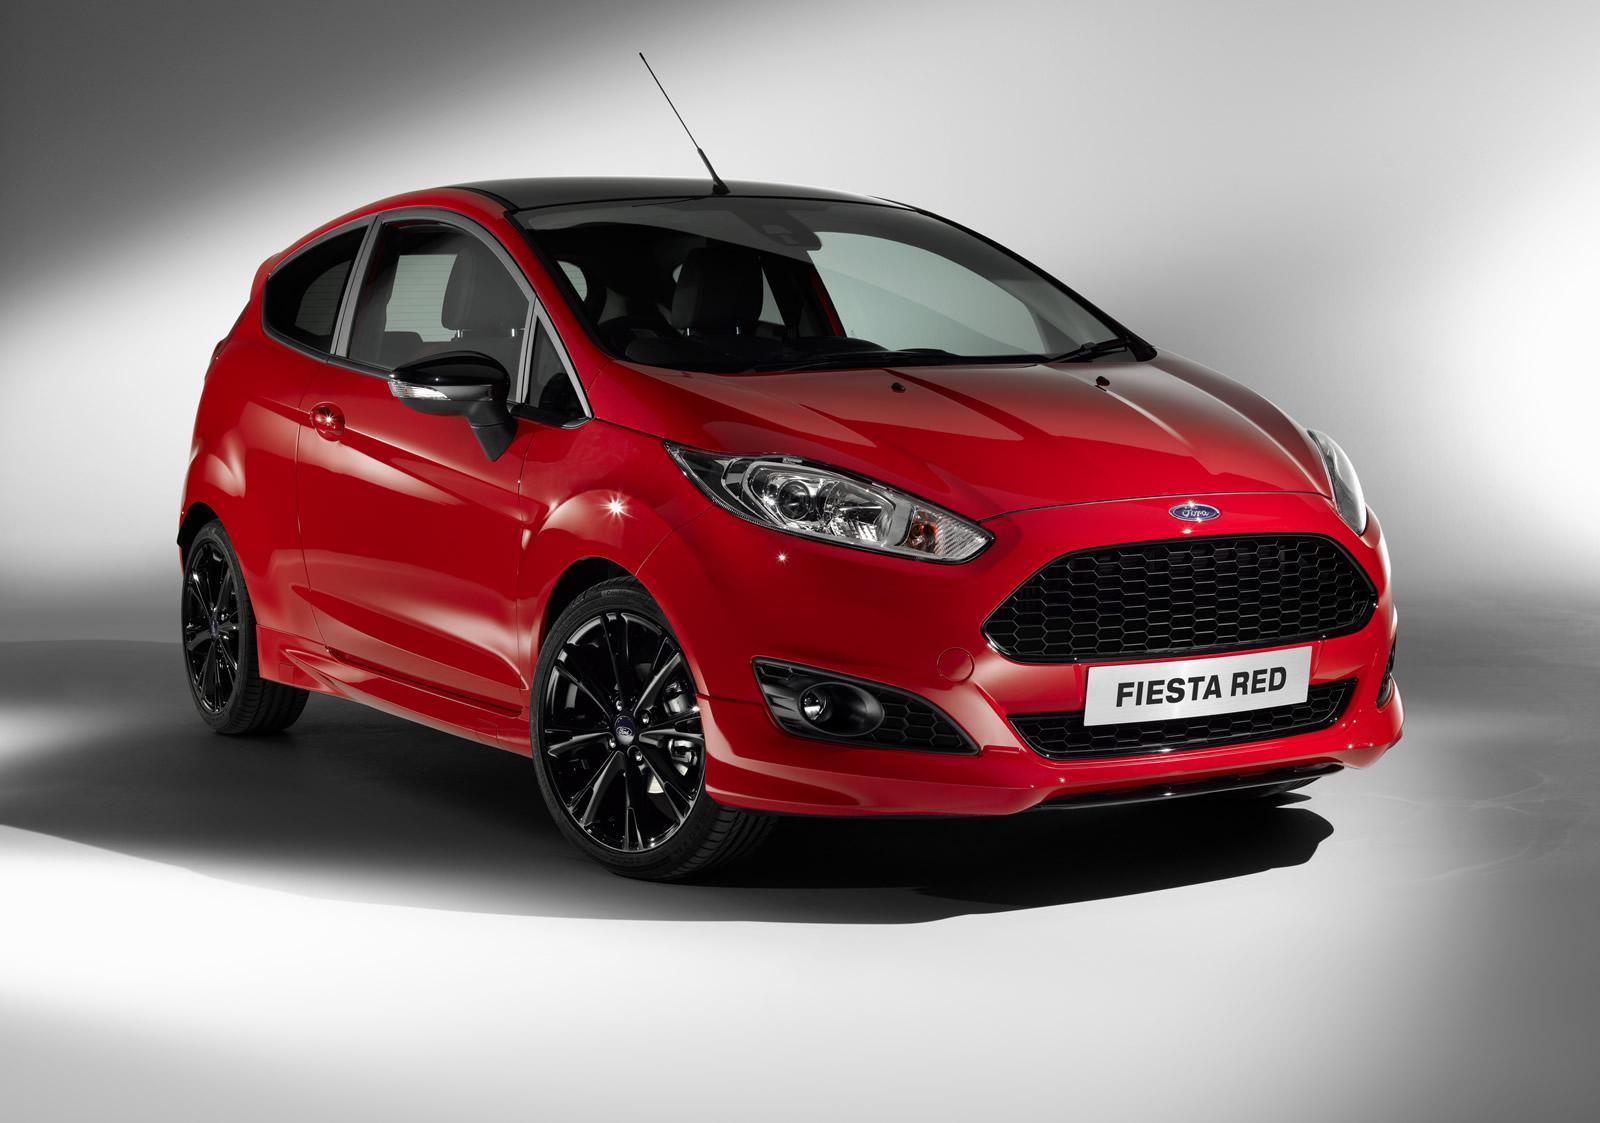 Ford Fiesta Red and Black Editions (3)